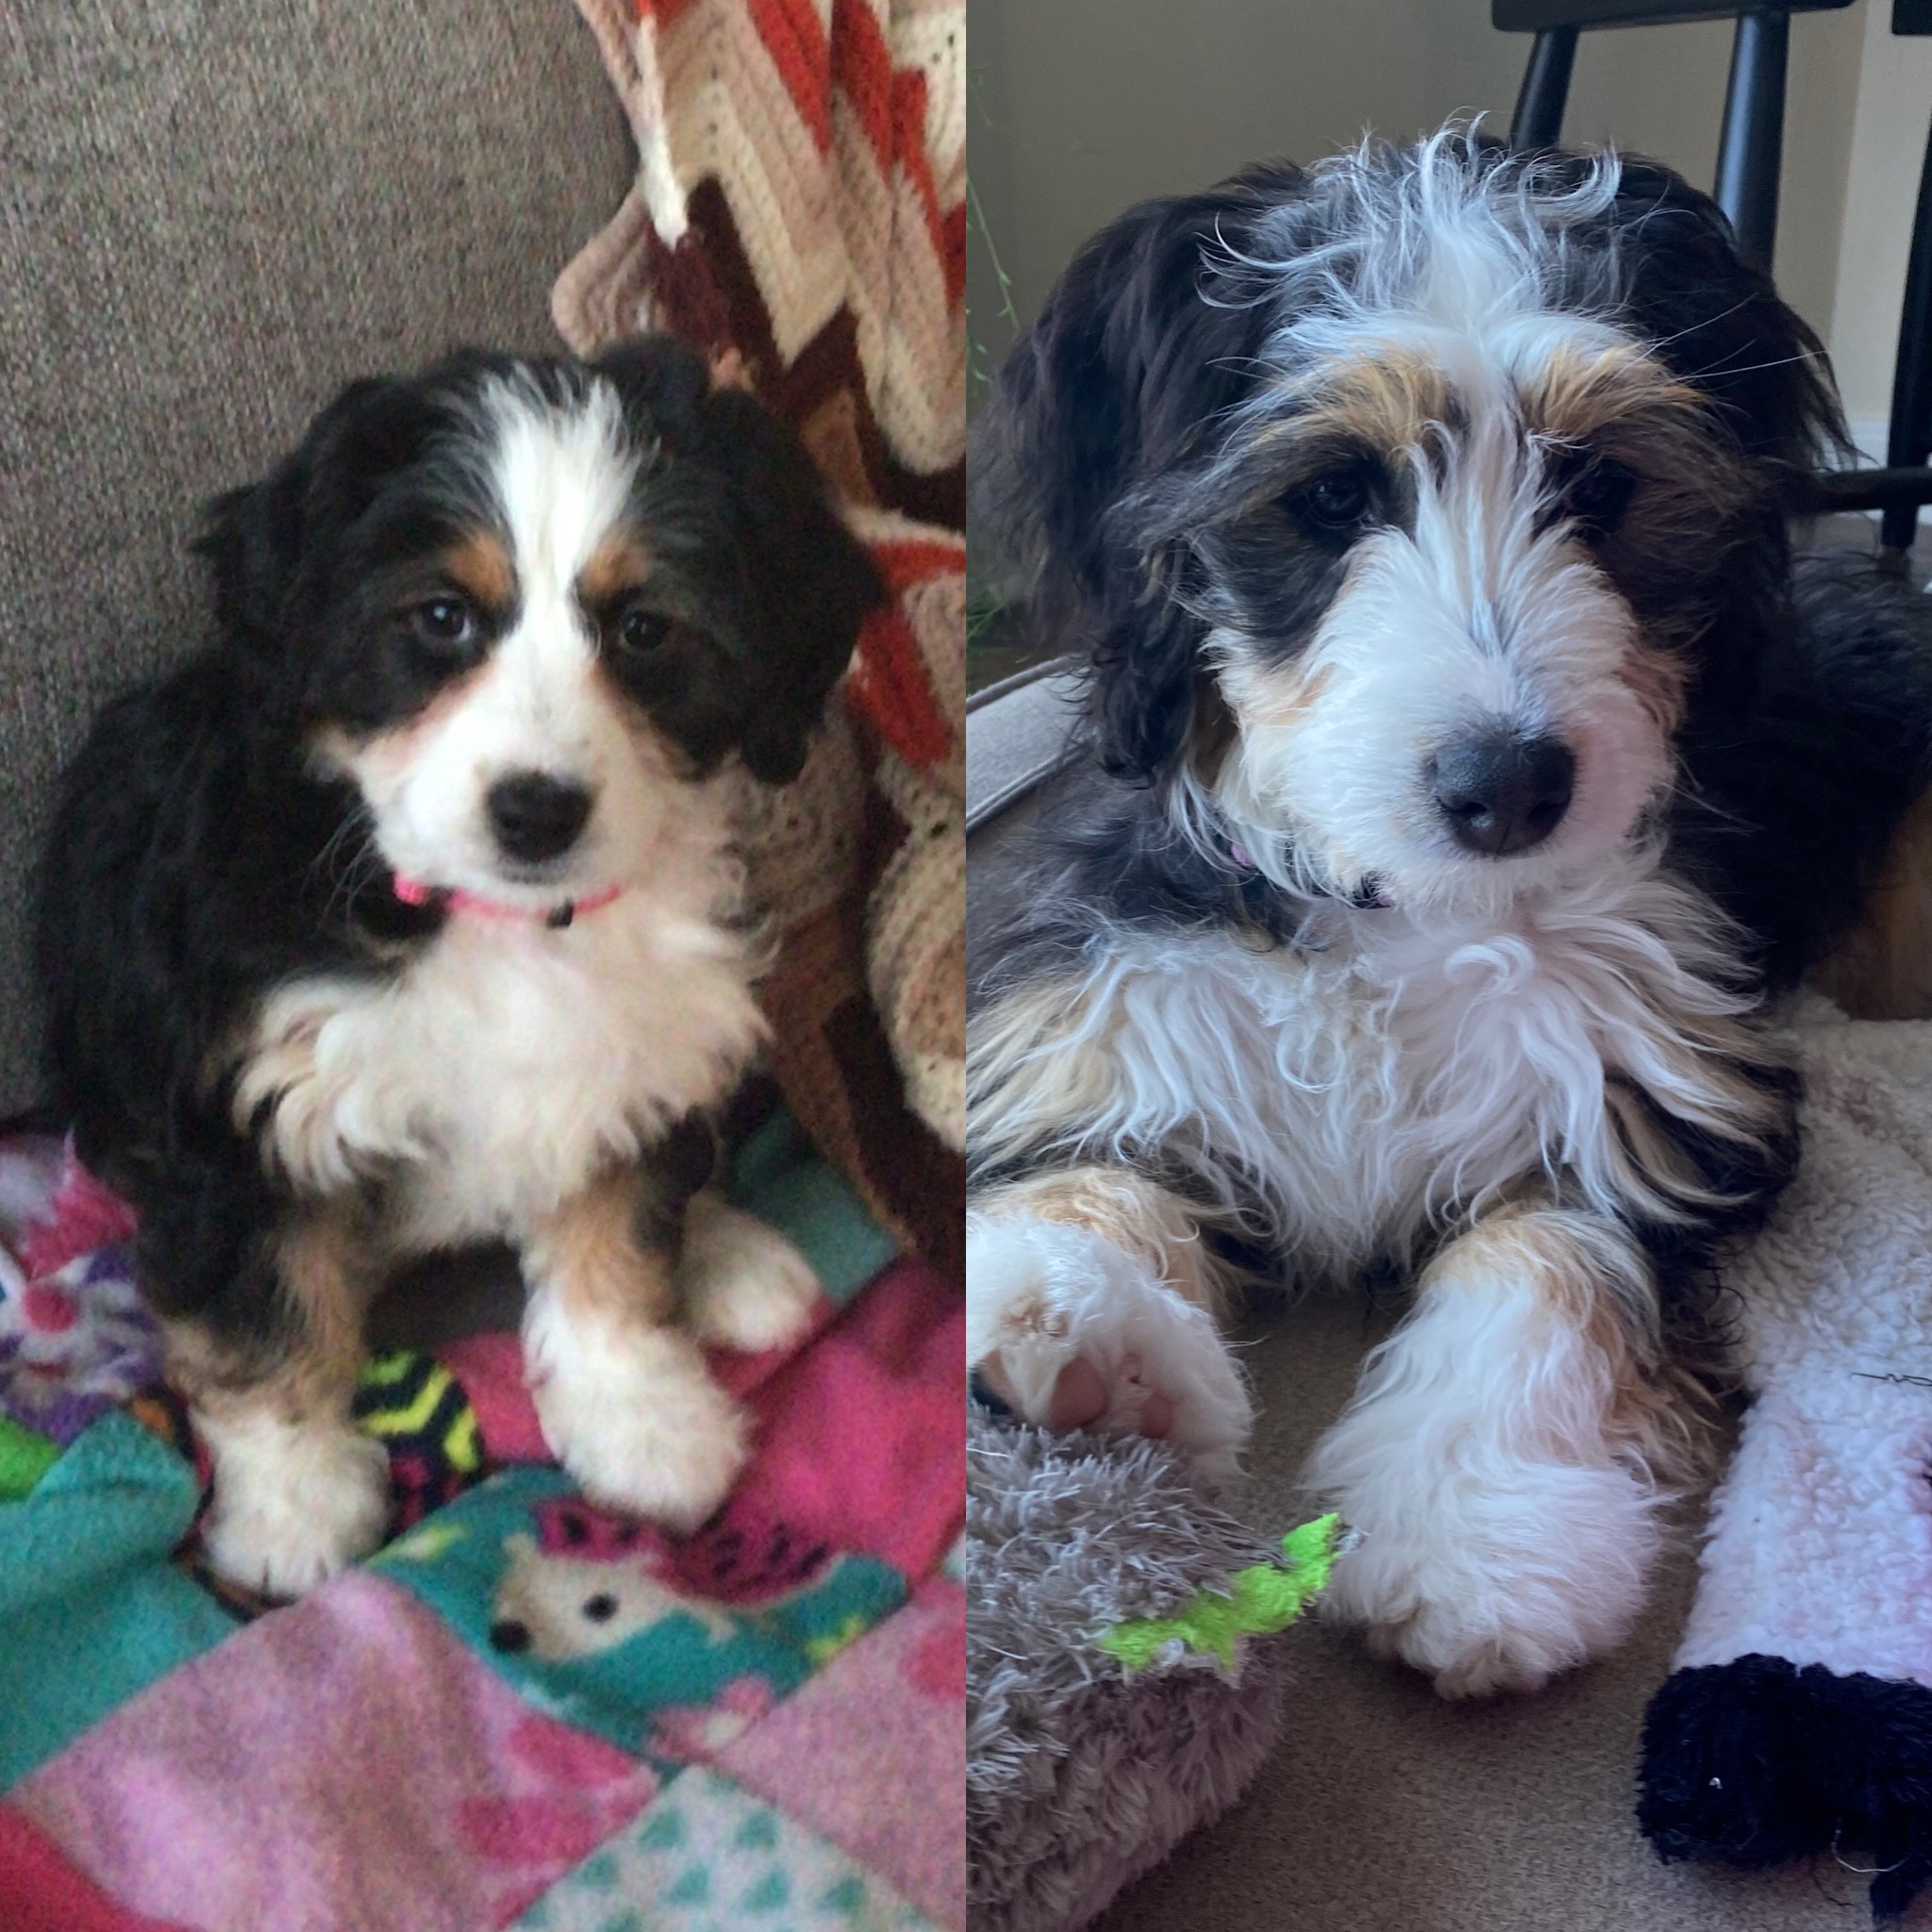 We Got TWO Puppies During the Pandemic and Survived! Ten things we learned having two puppies! #Puppies #Pandemic #PuppiesDuringThePademic #PuppyCareTips